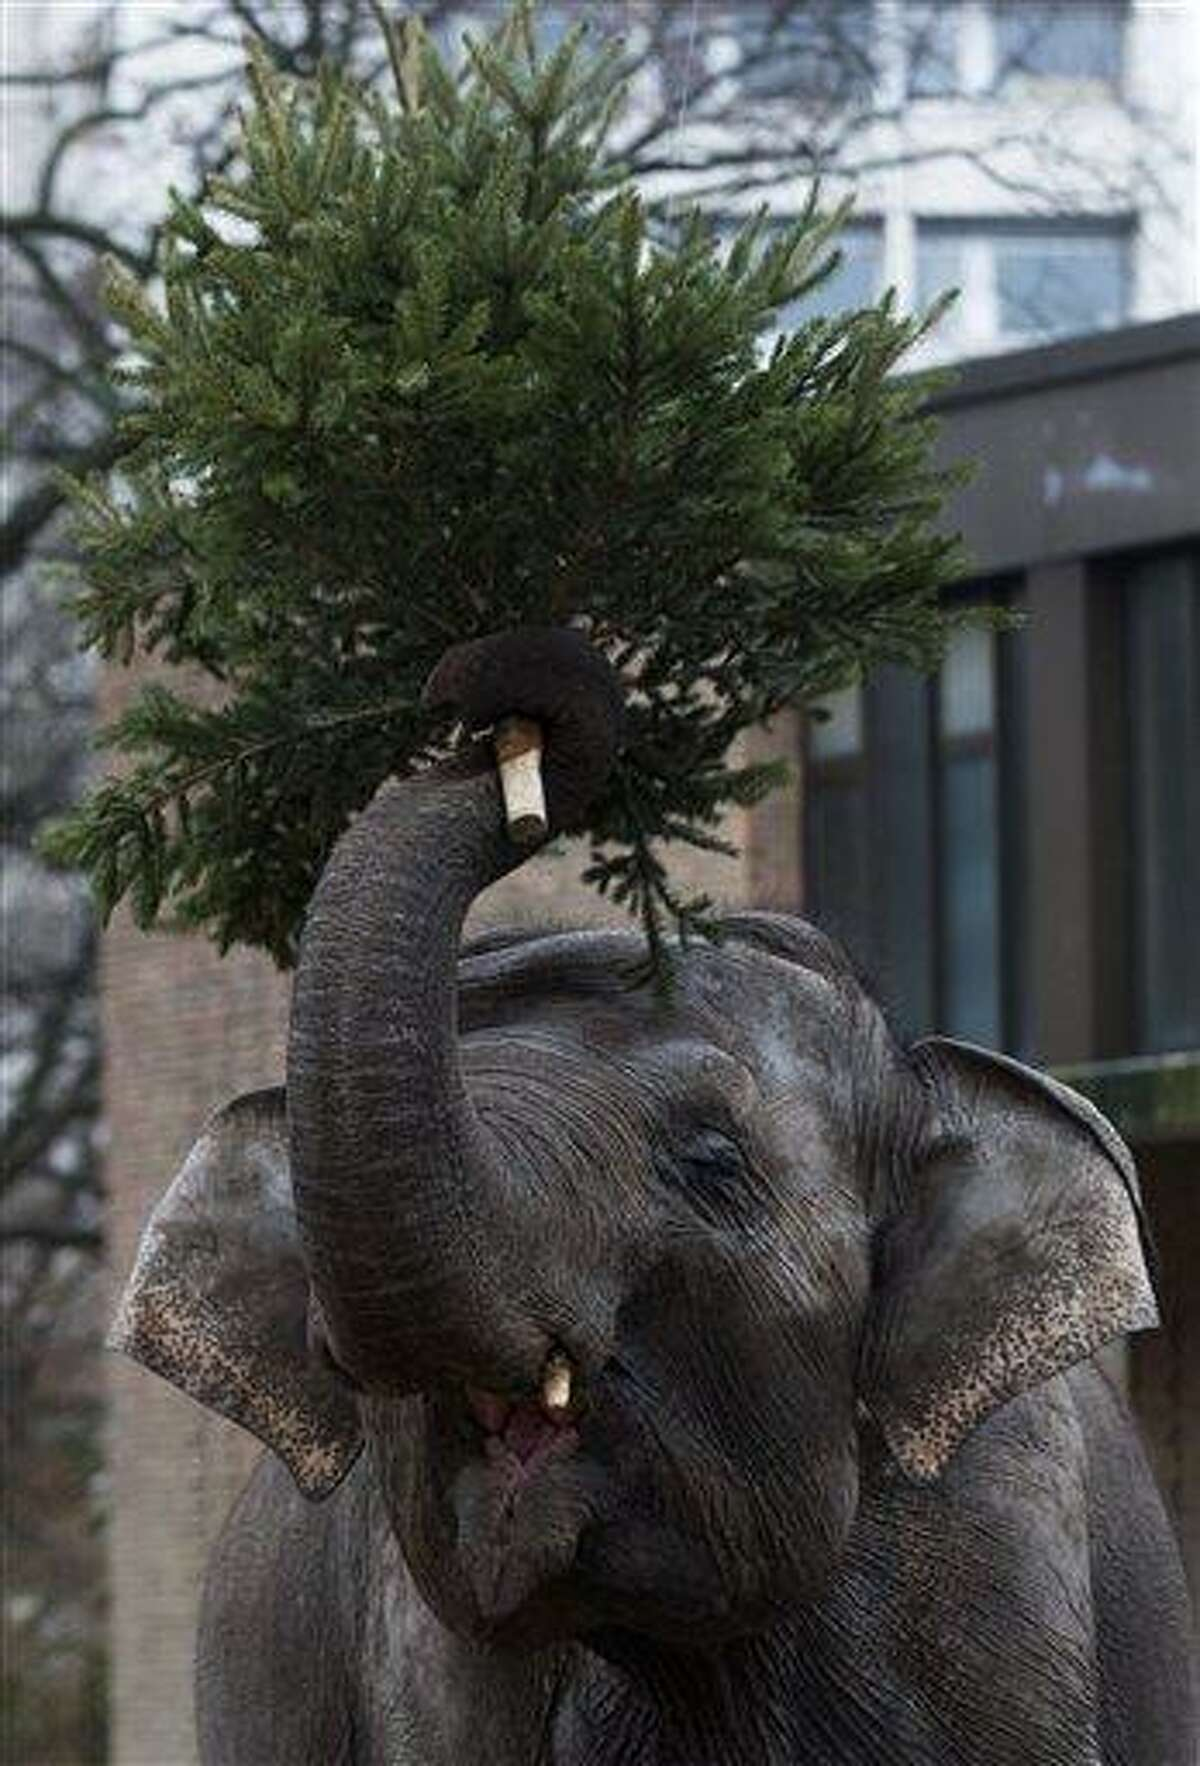 An elephant holds a Christmas tree at the Berlin Zoo at the launch of the annual feeding of Christmas trees in Berlin, Friday, Jan. 4, 2013. Keeper Dr. Ragnar Kuehne told reporters that today was the first day the elephants and some other zoo animals were fed with Christmas trees after the holiday period. The trees have not been used and were not sold, they were donated by the vendors in the area. (AP Photo/Markus Schreiber)